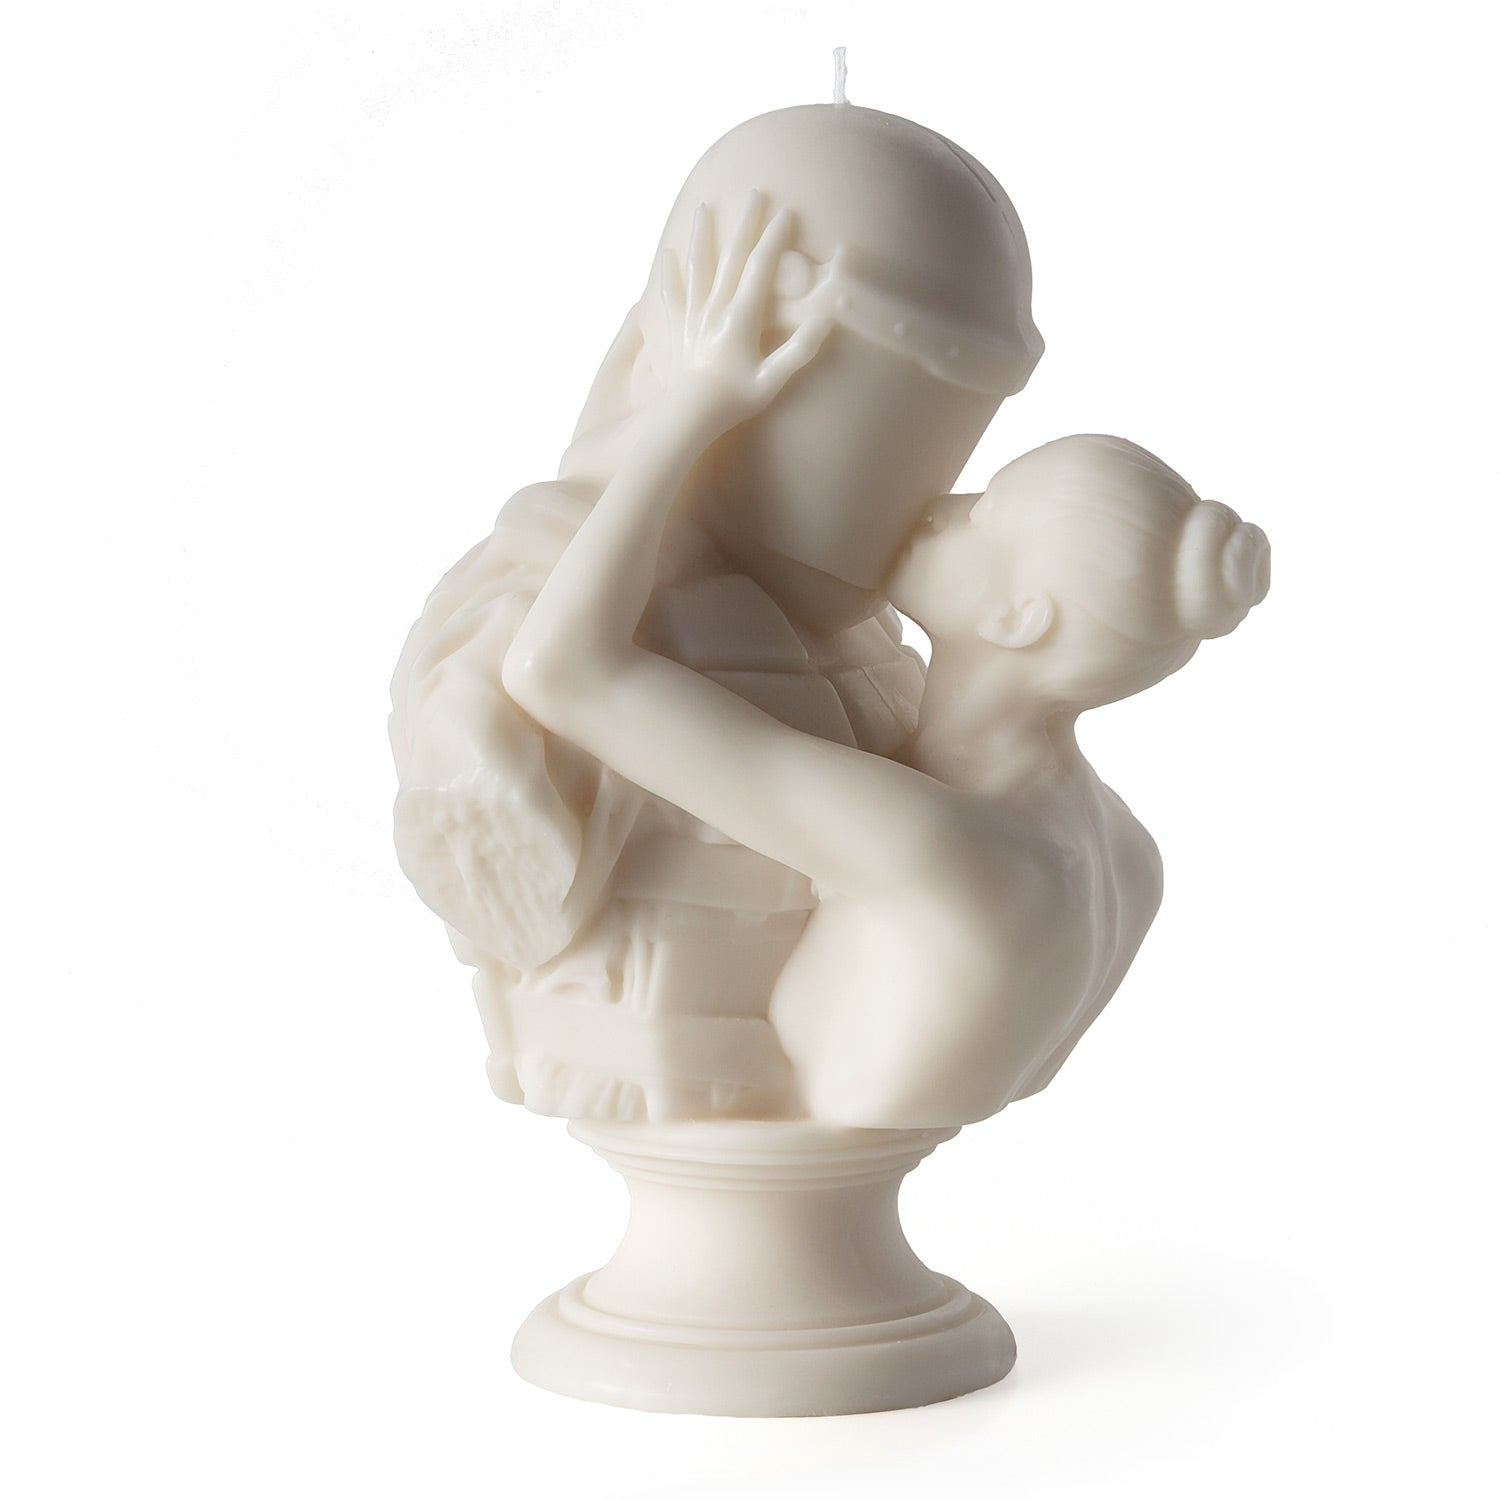 This Is Not Studio - 'The Kiss' Sculpture Candle